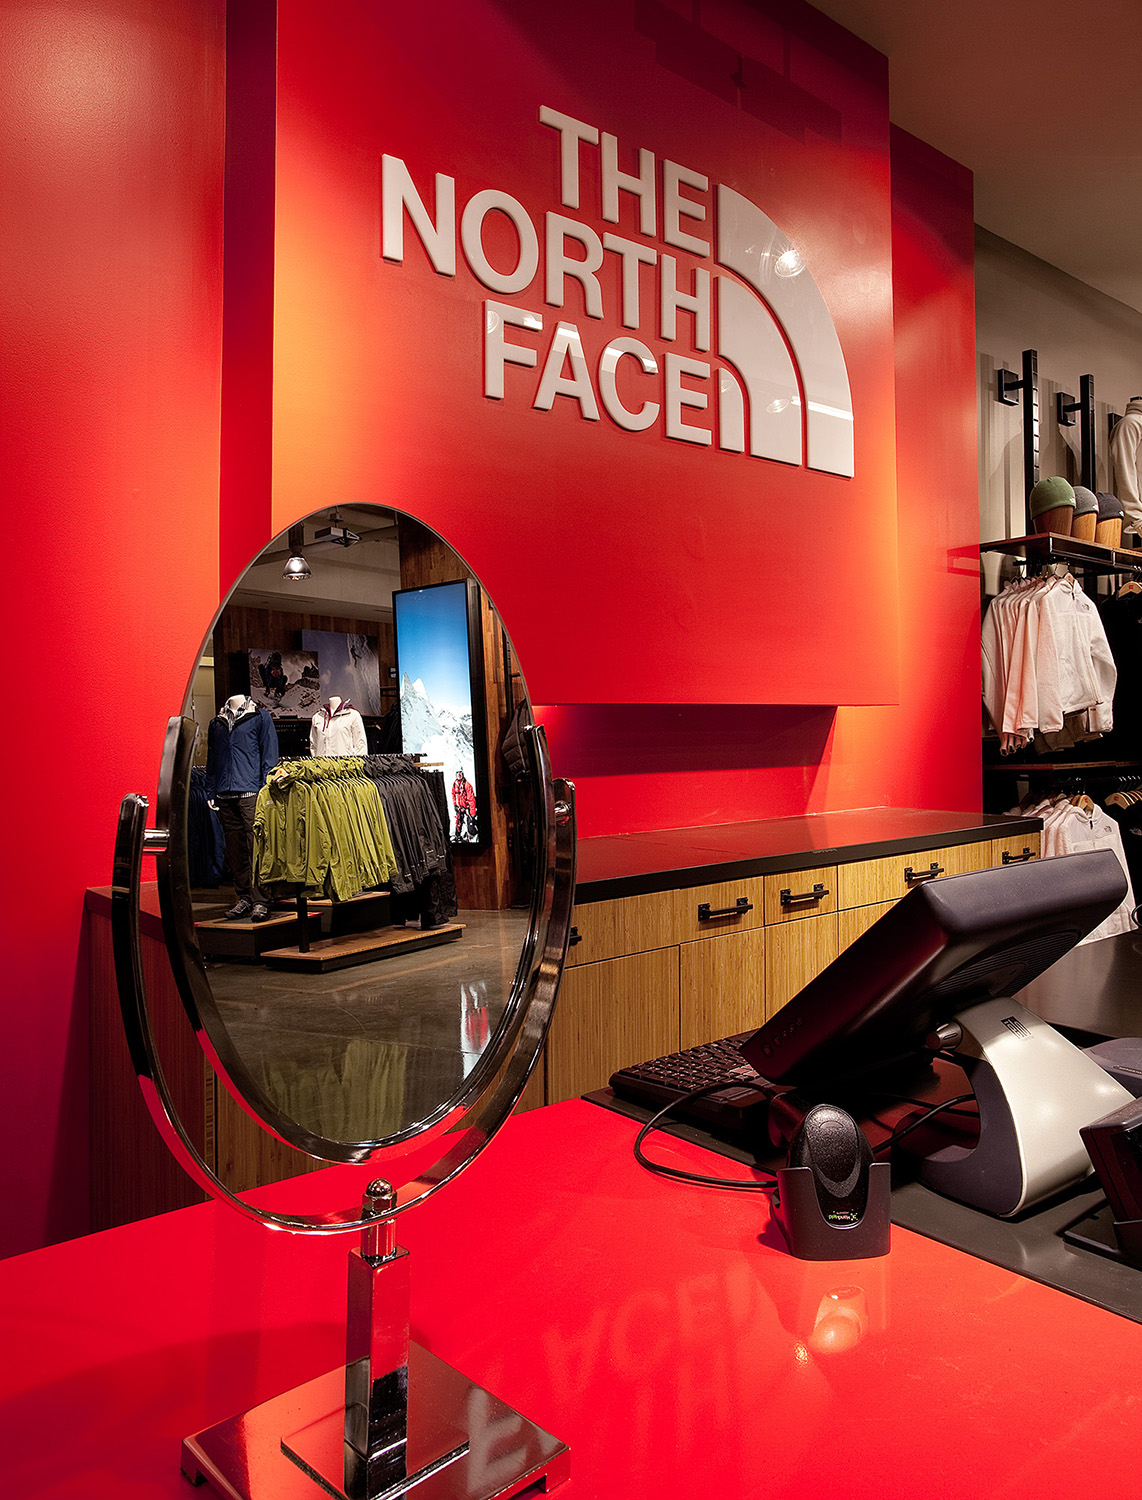 The North Face, Toronto